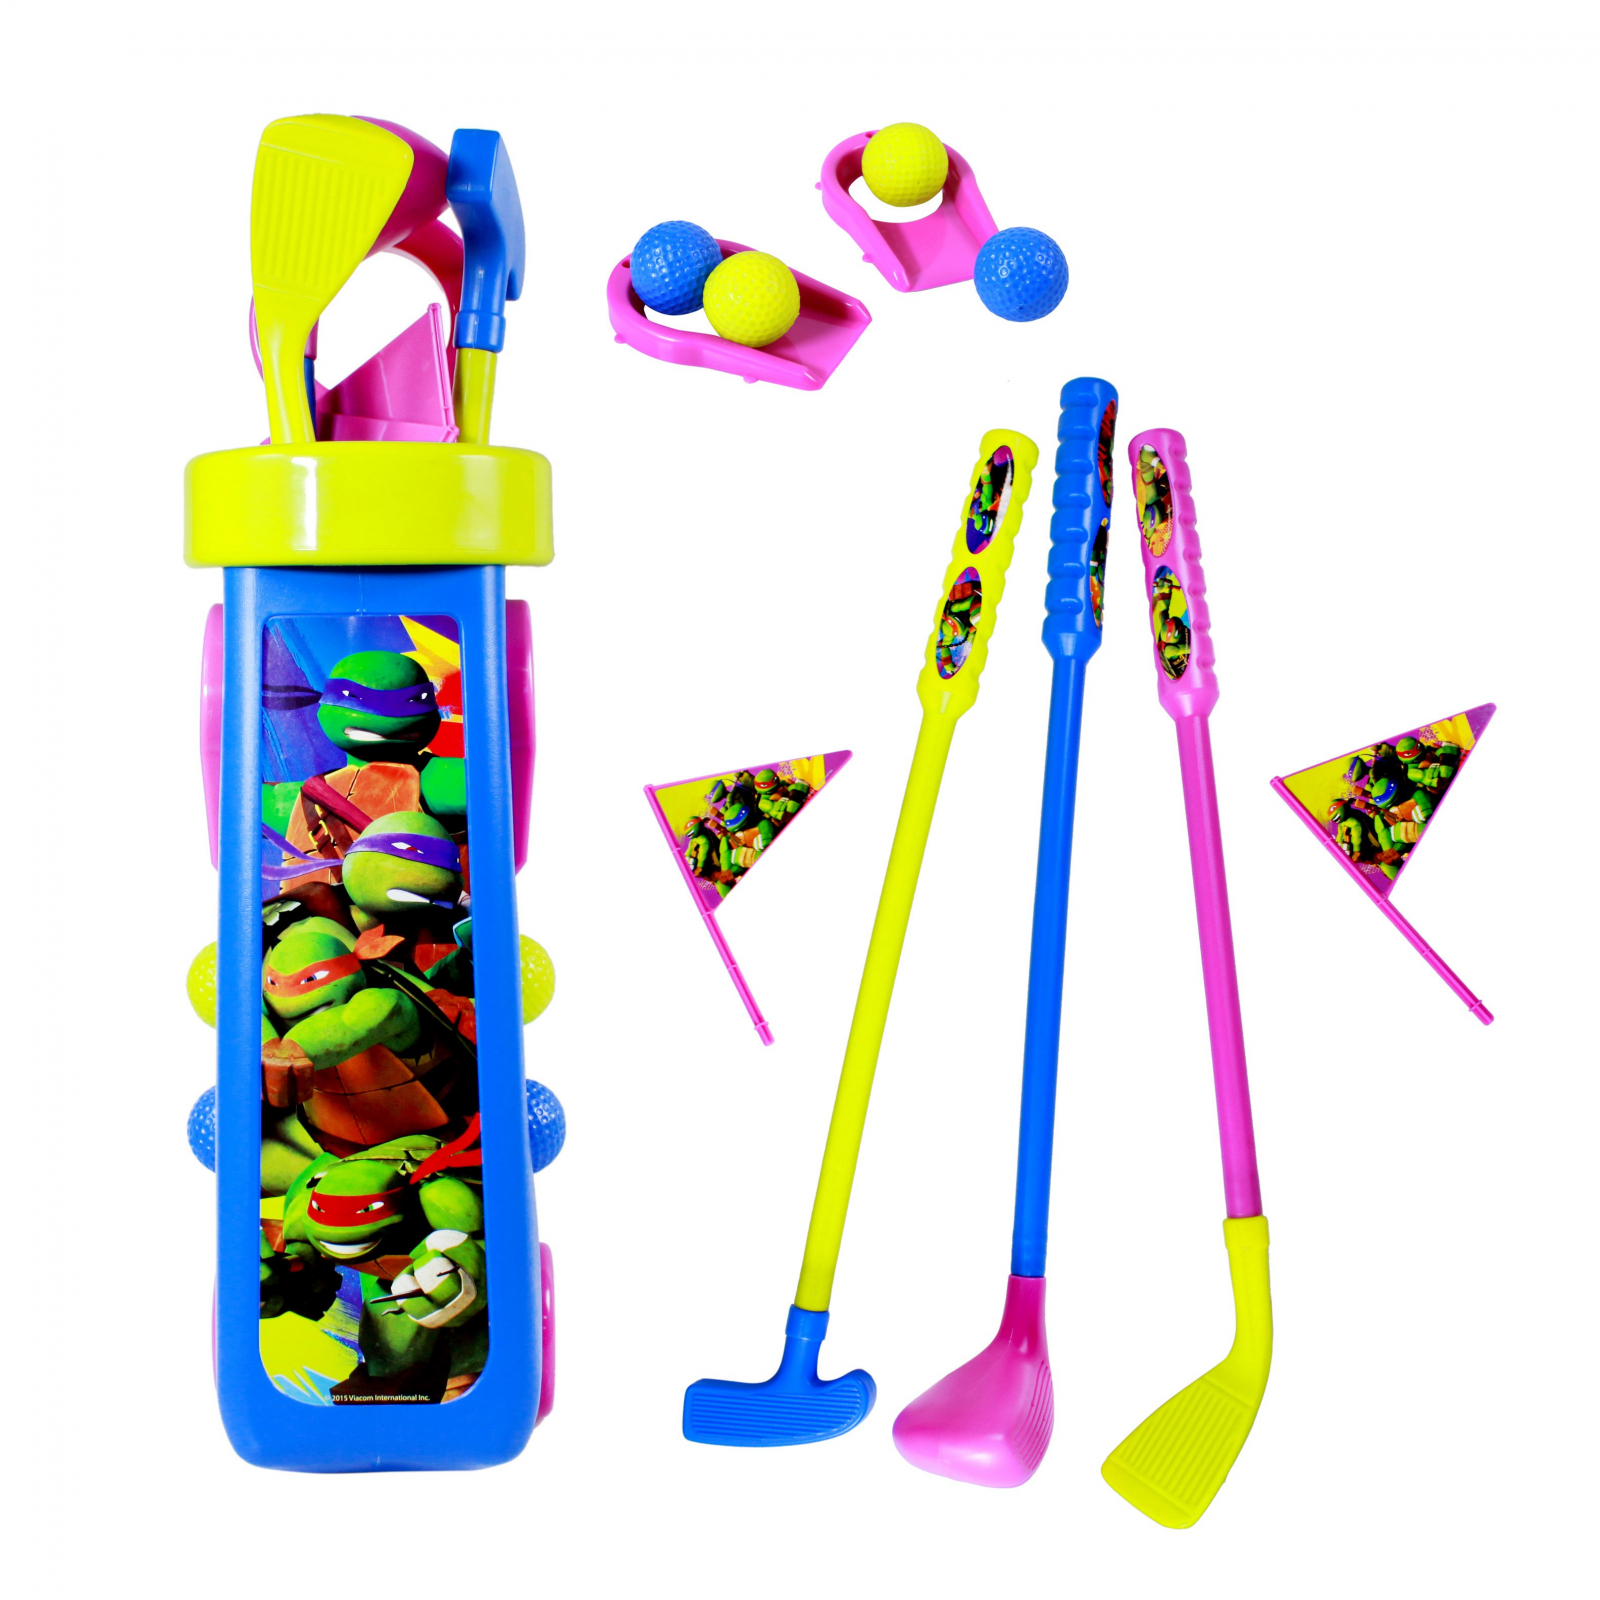 Nickelodeon TMNT Kids Golf Caddy Play Set 10 Pieces